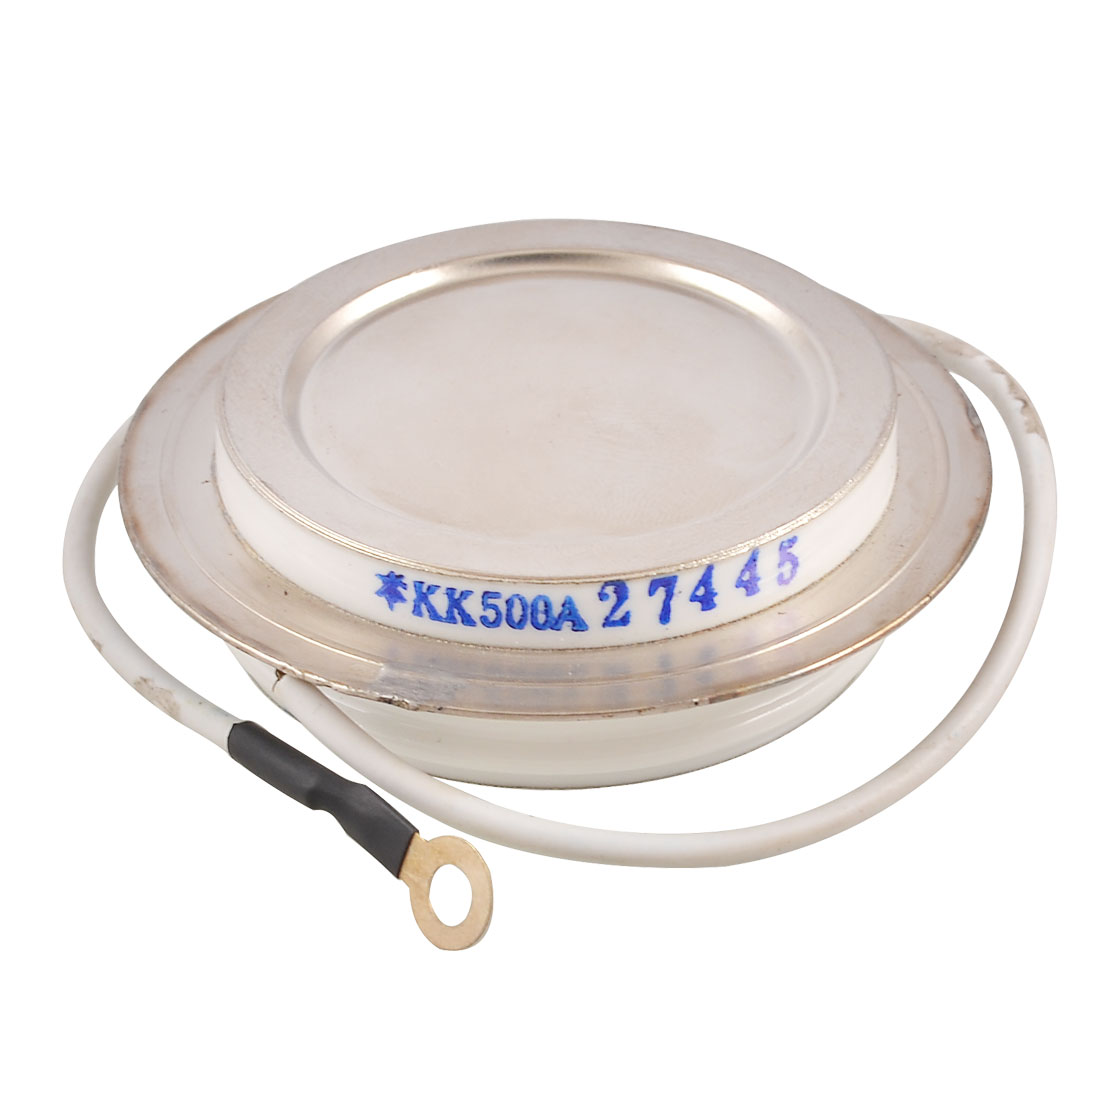 1.6KV 500A KK Silver Tone Metal Case Fast Silicon Controlled Rectifier